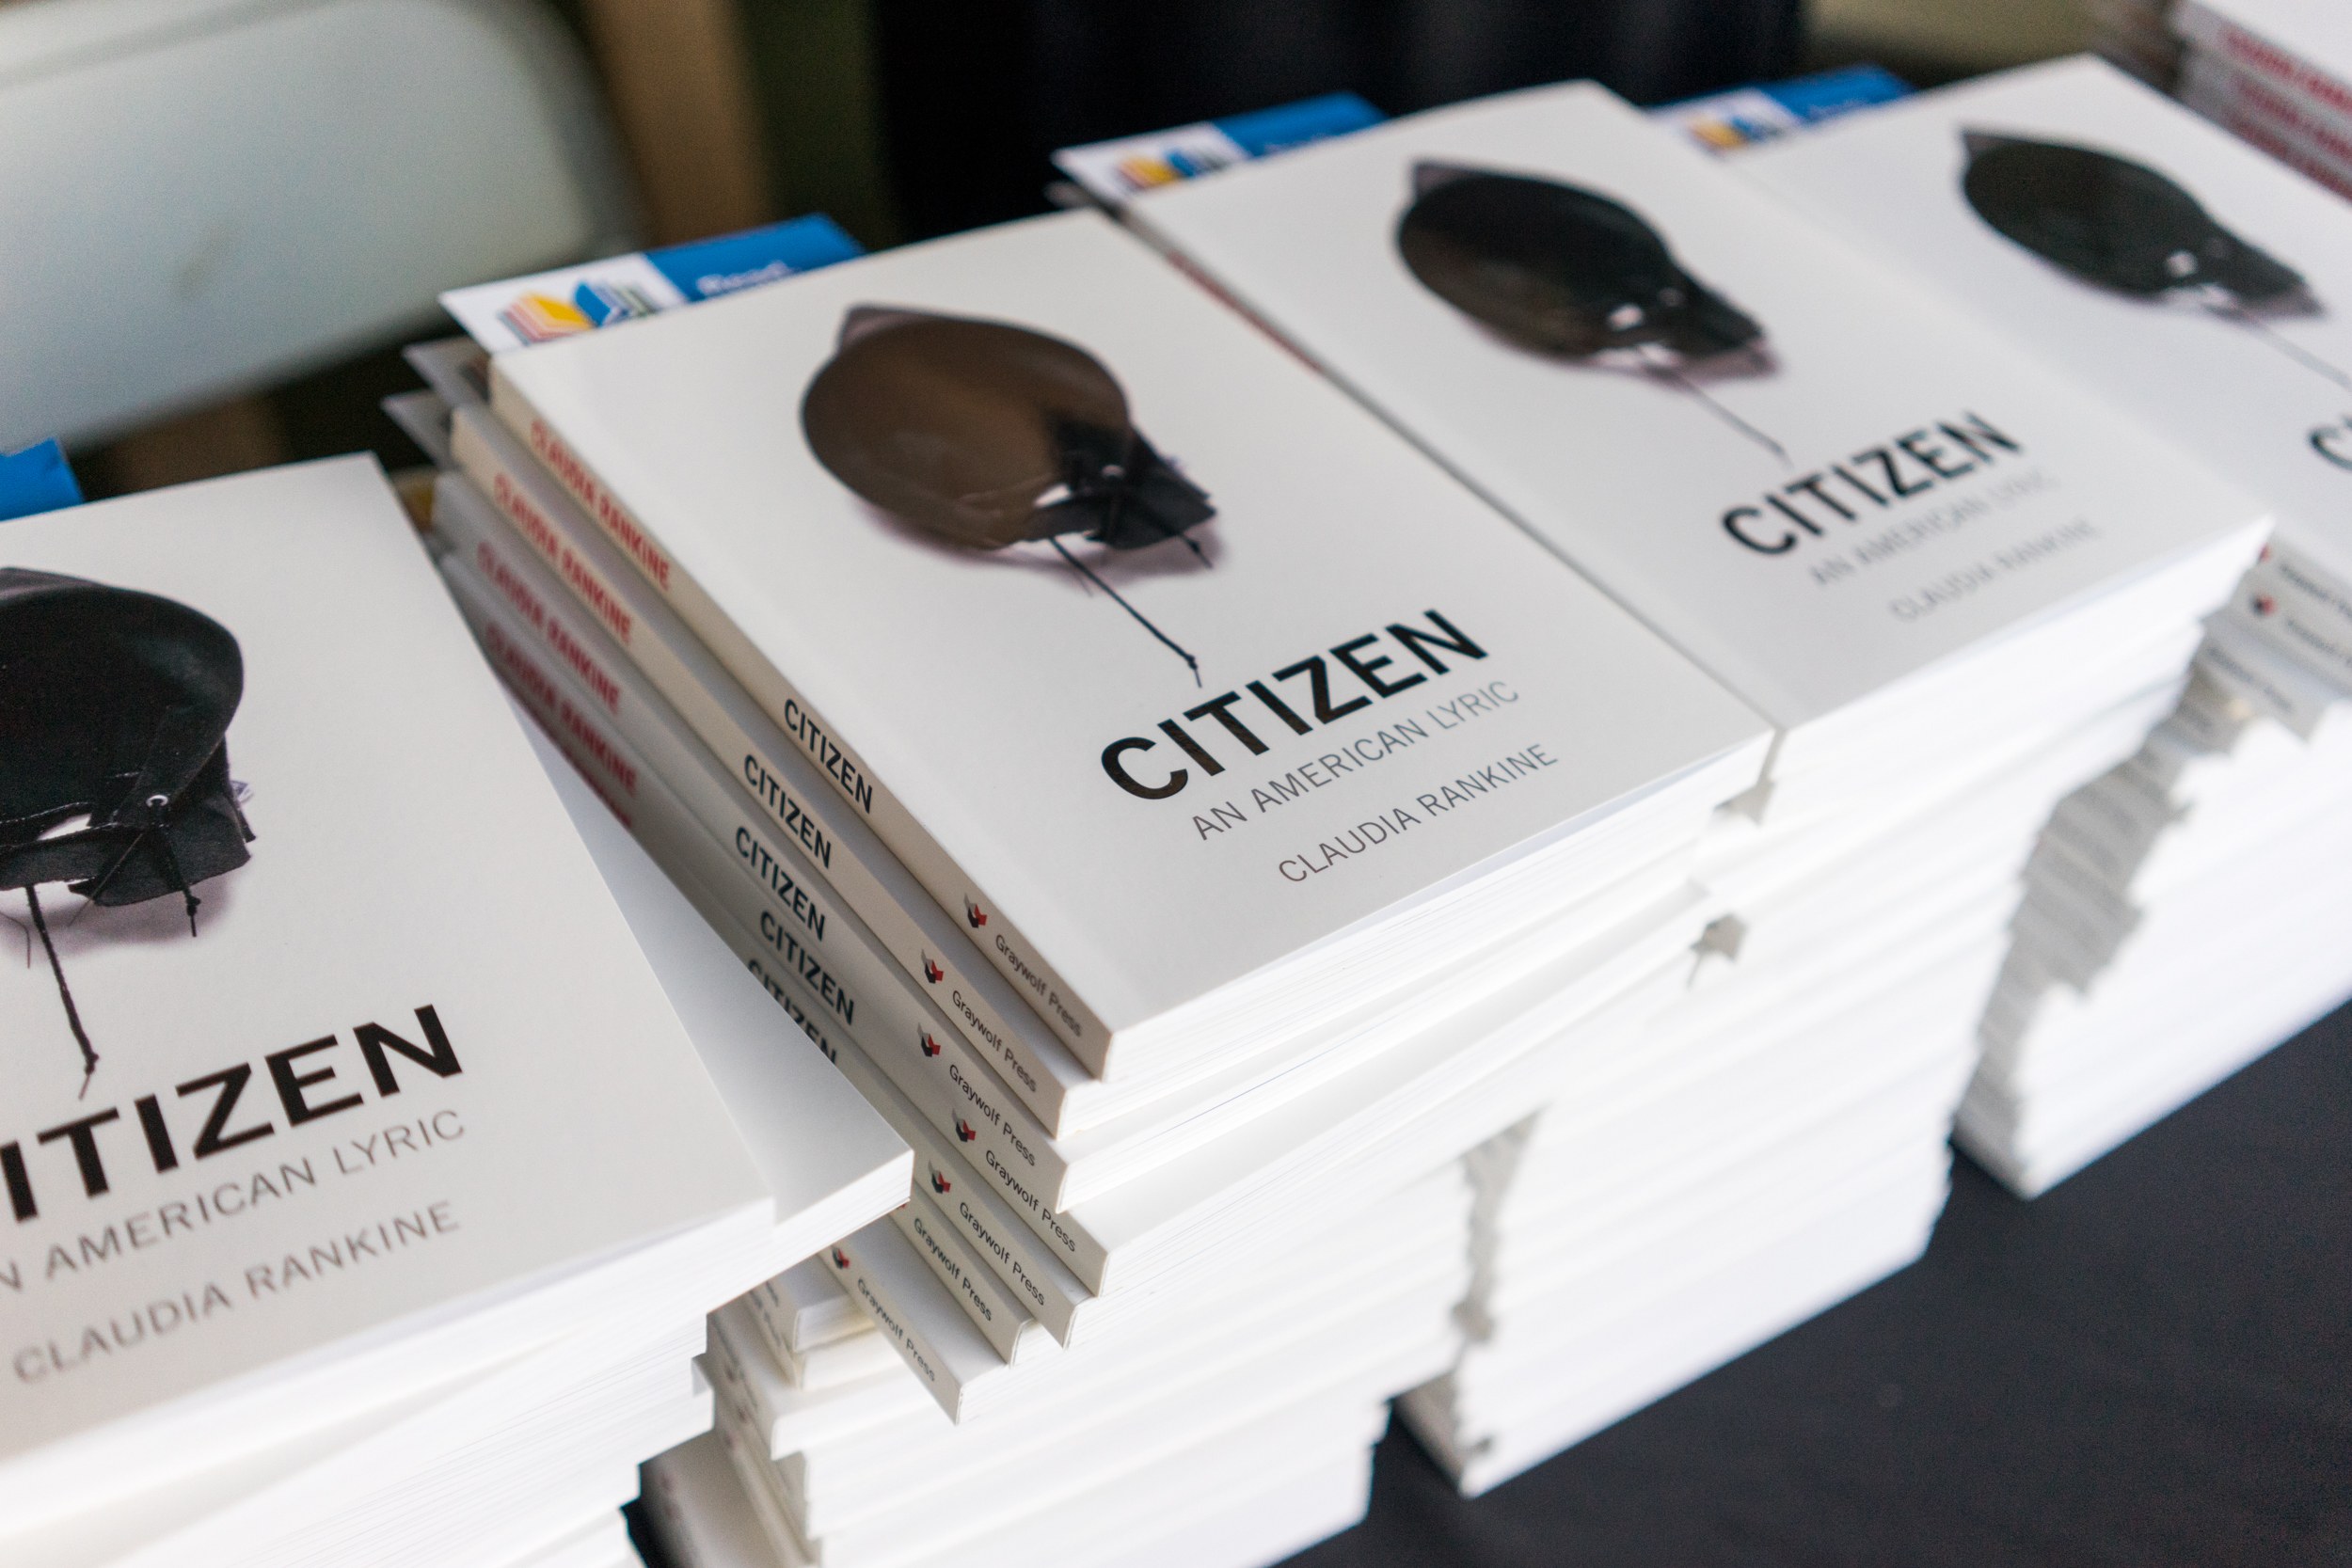 Copies of Citizen: An American Lyric